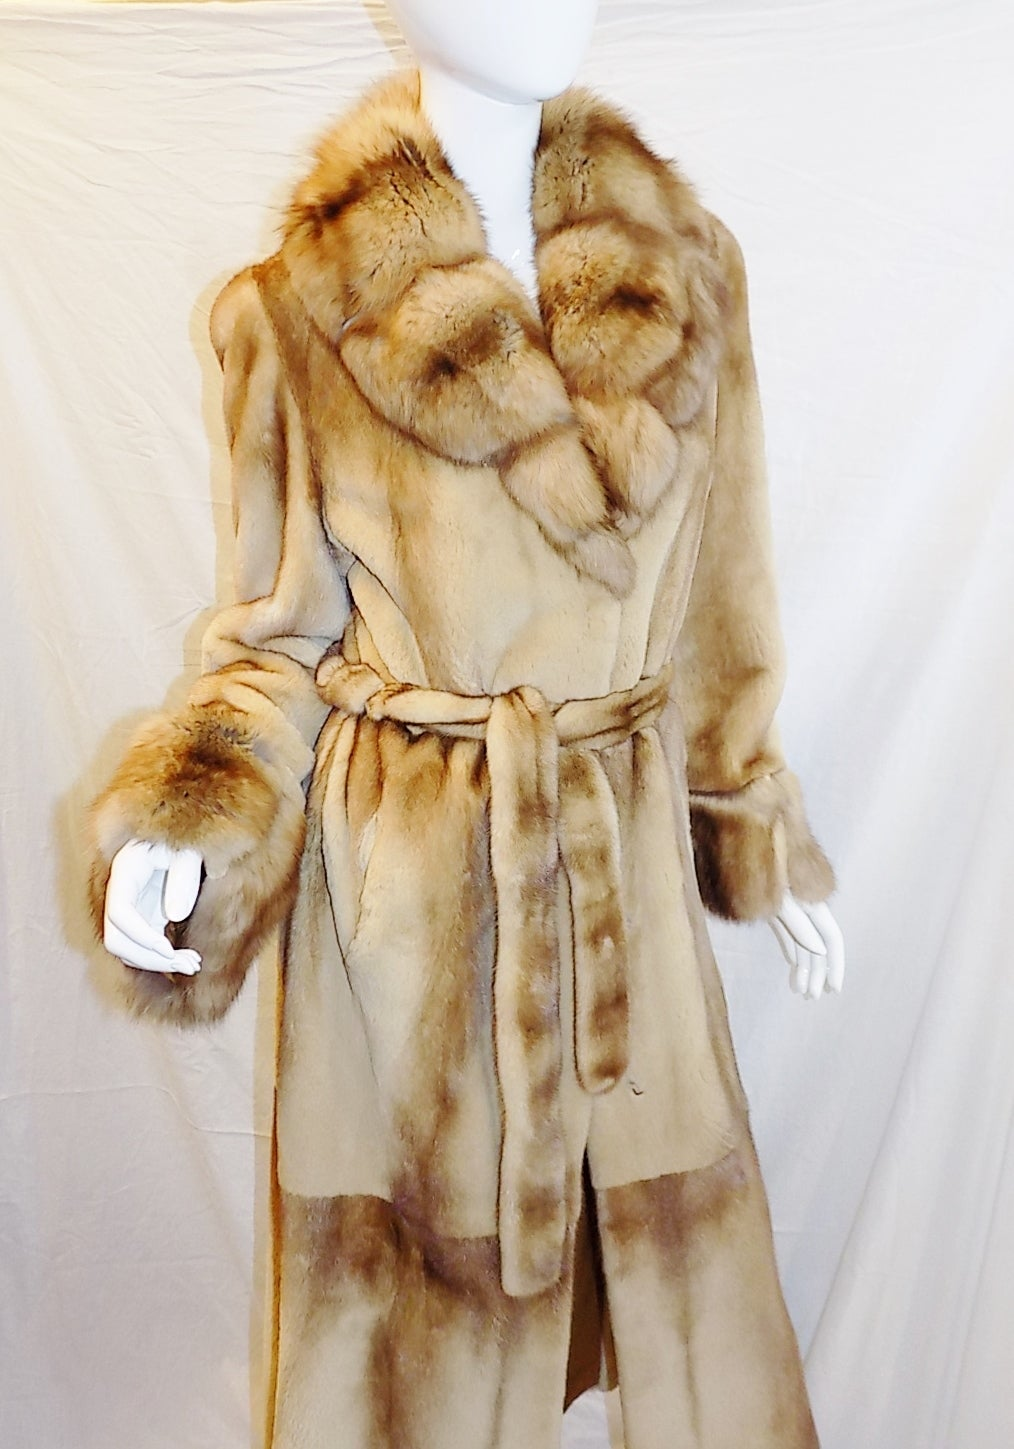 Insanely beautiful  honey ombre  sheared( from longer to shorter hair) female  mink with Russian large shawl collar and cuffs. Coat is last season custom made by Saga Furs Royal edition. Fully Lined in tabacco.. Front clips closure. Side slits.